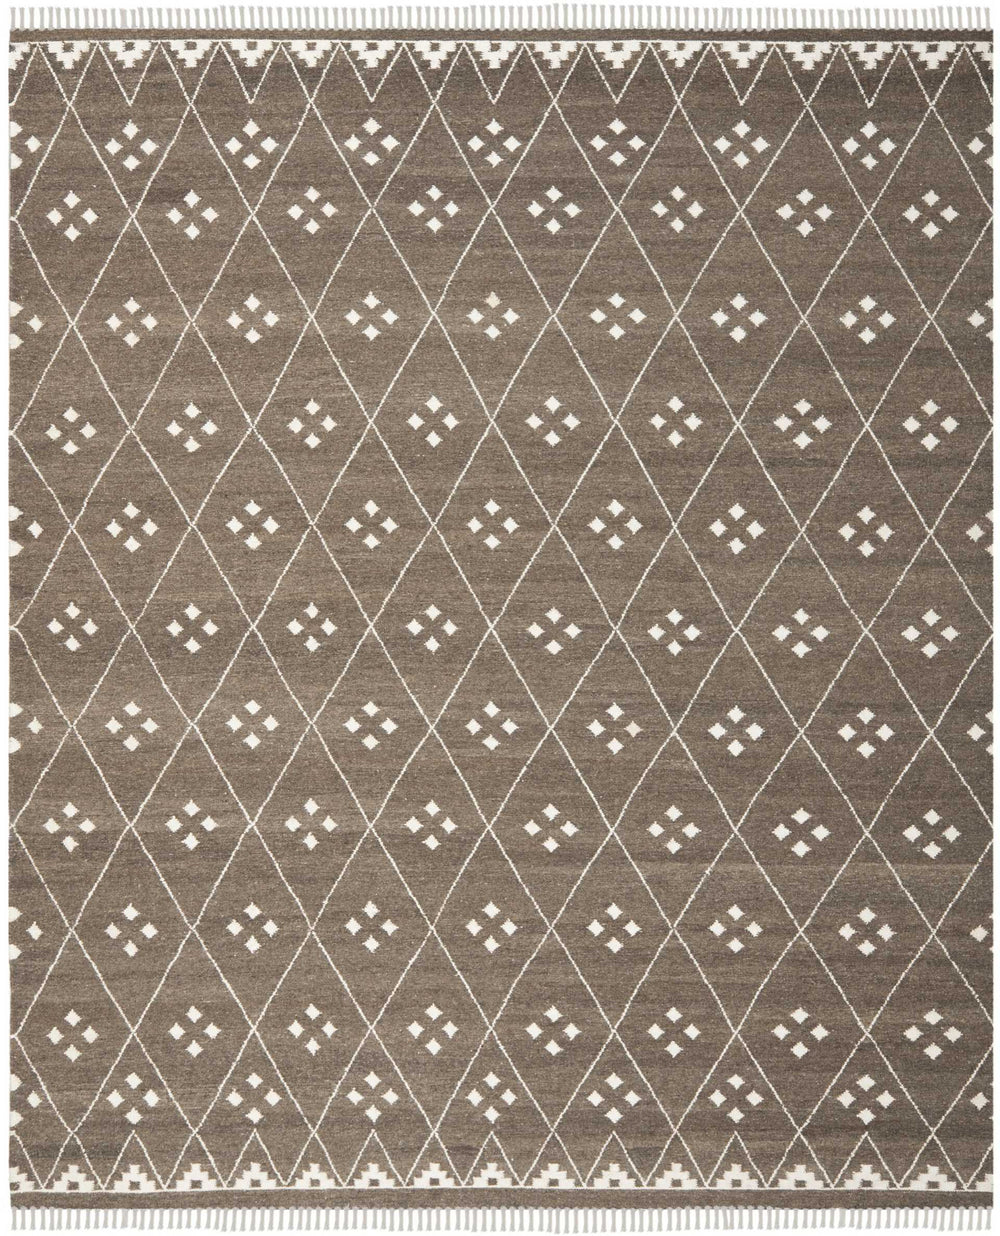 Safavieh Natural Kilim NKM316 Area Rug